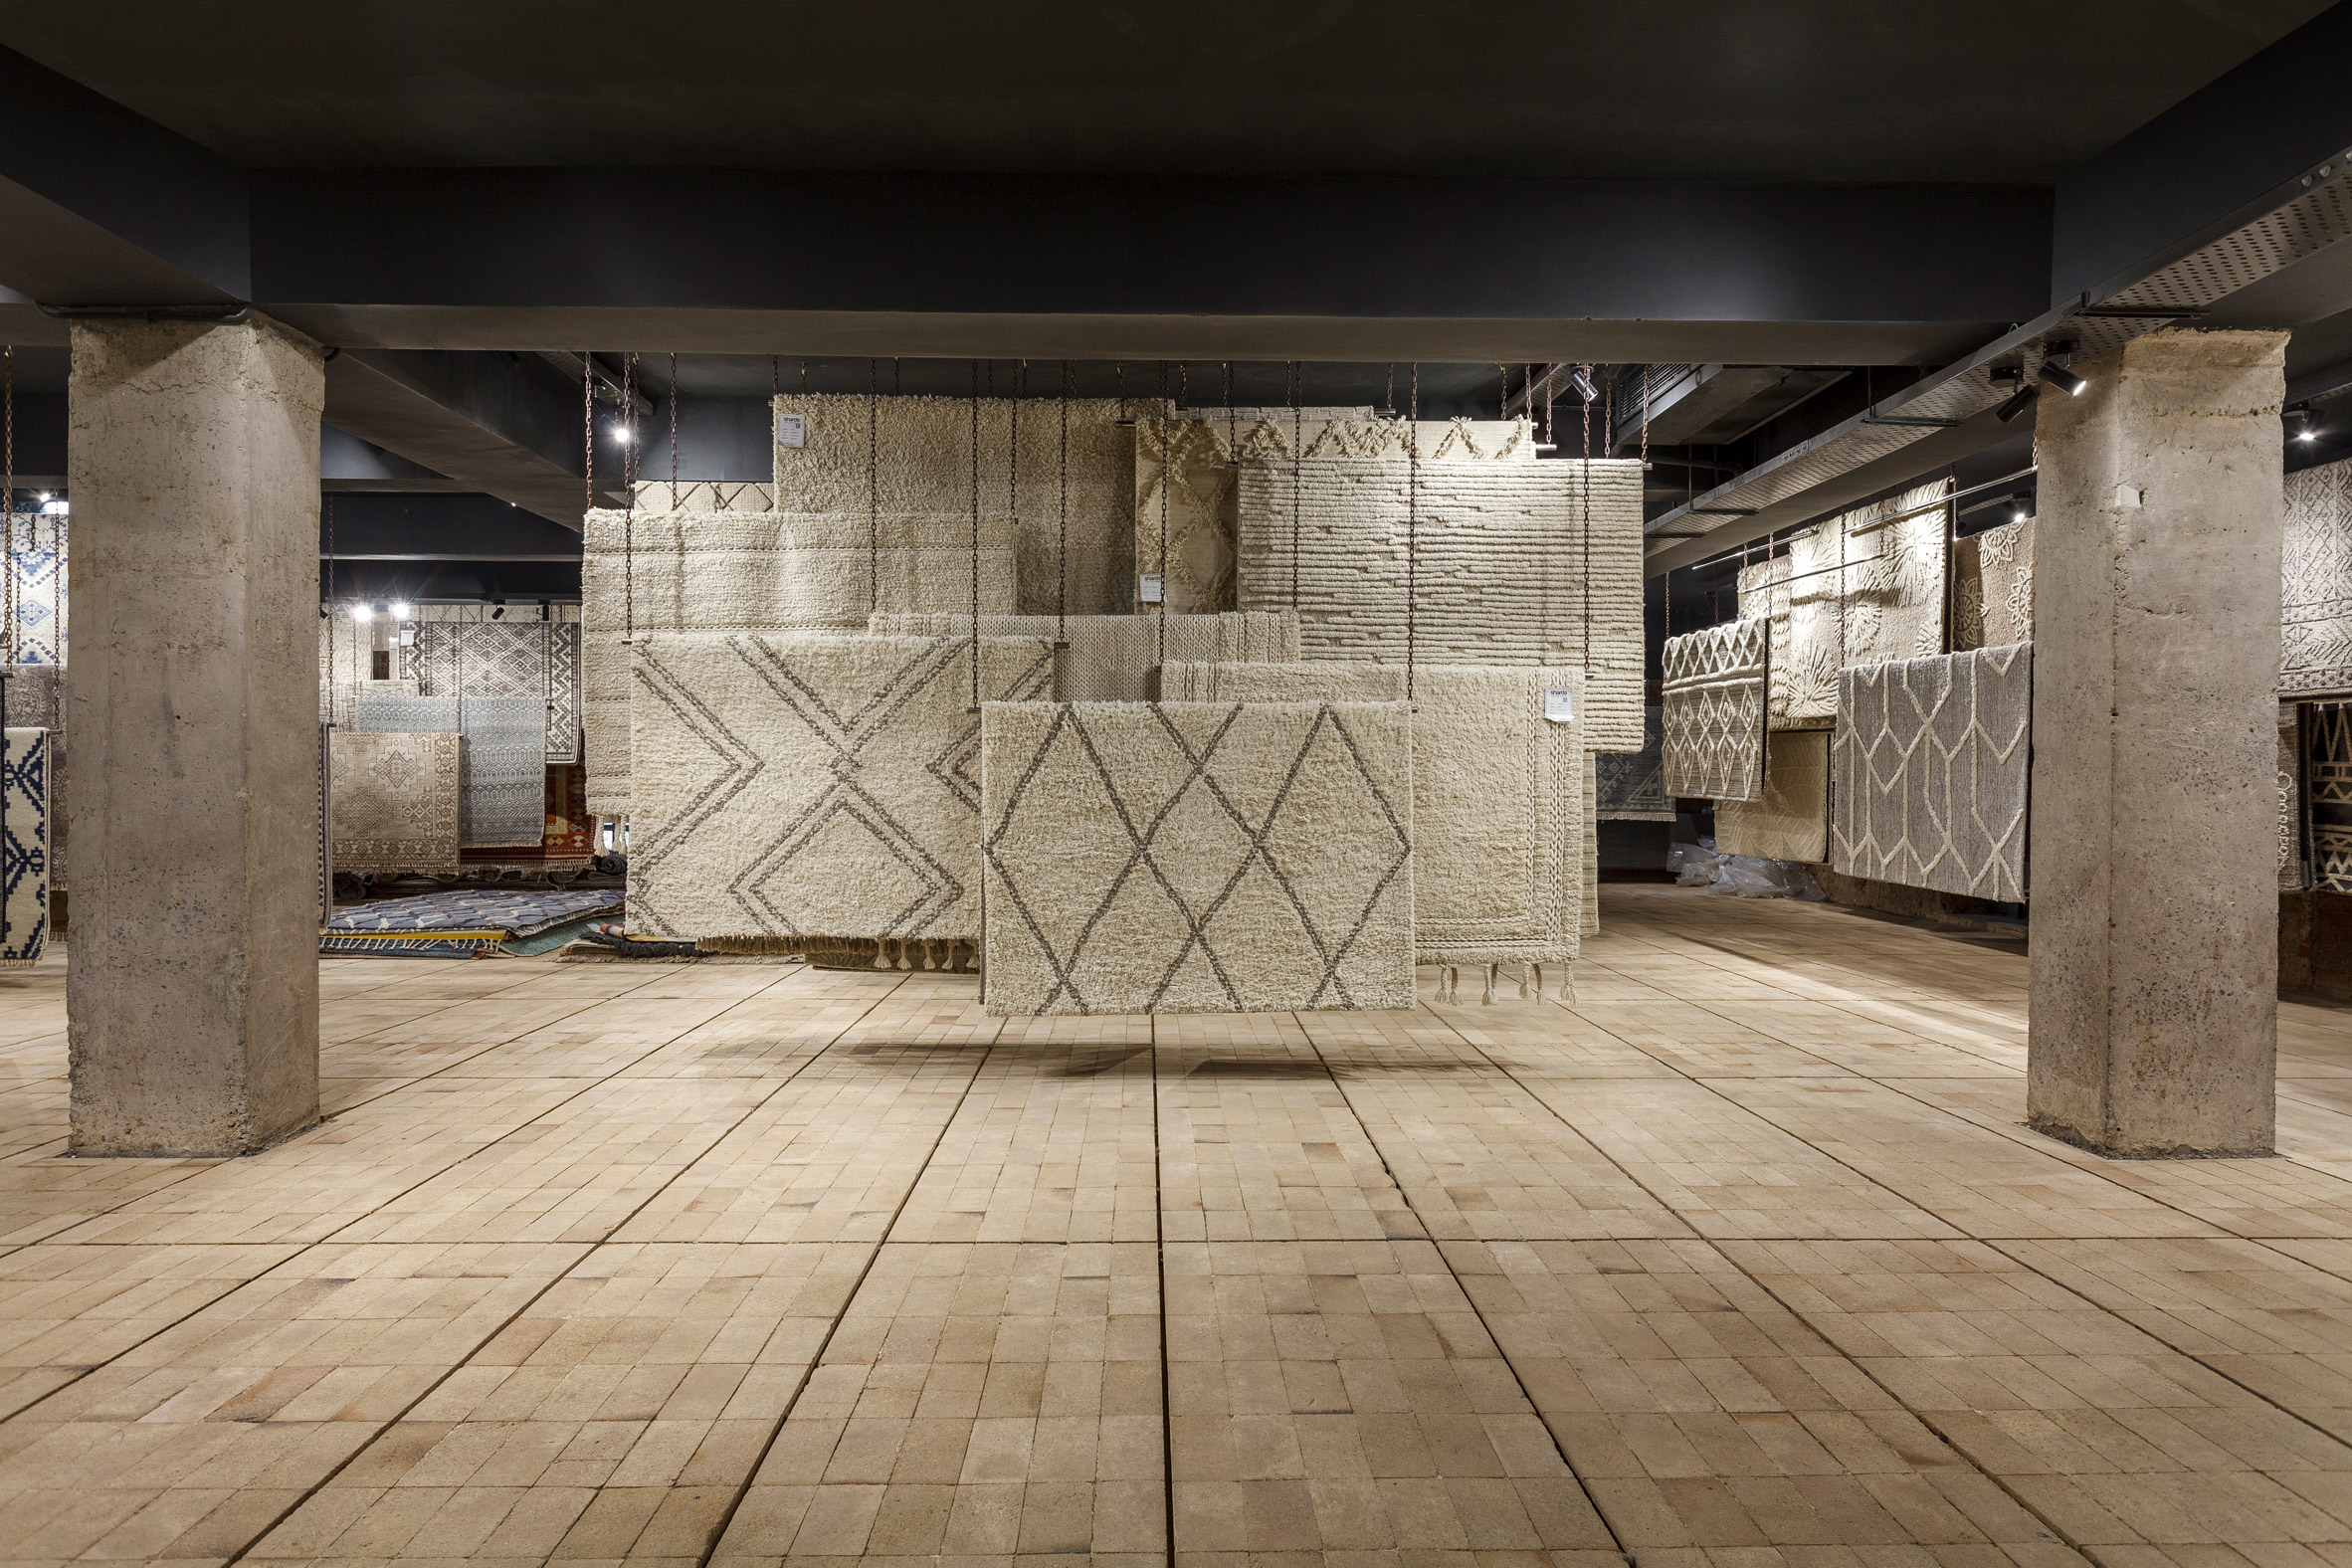 Pale firebrick covers the floors by Architecture Discipline